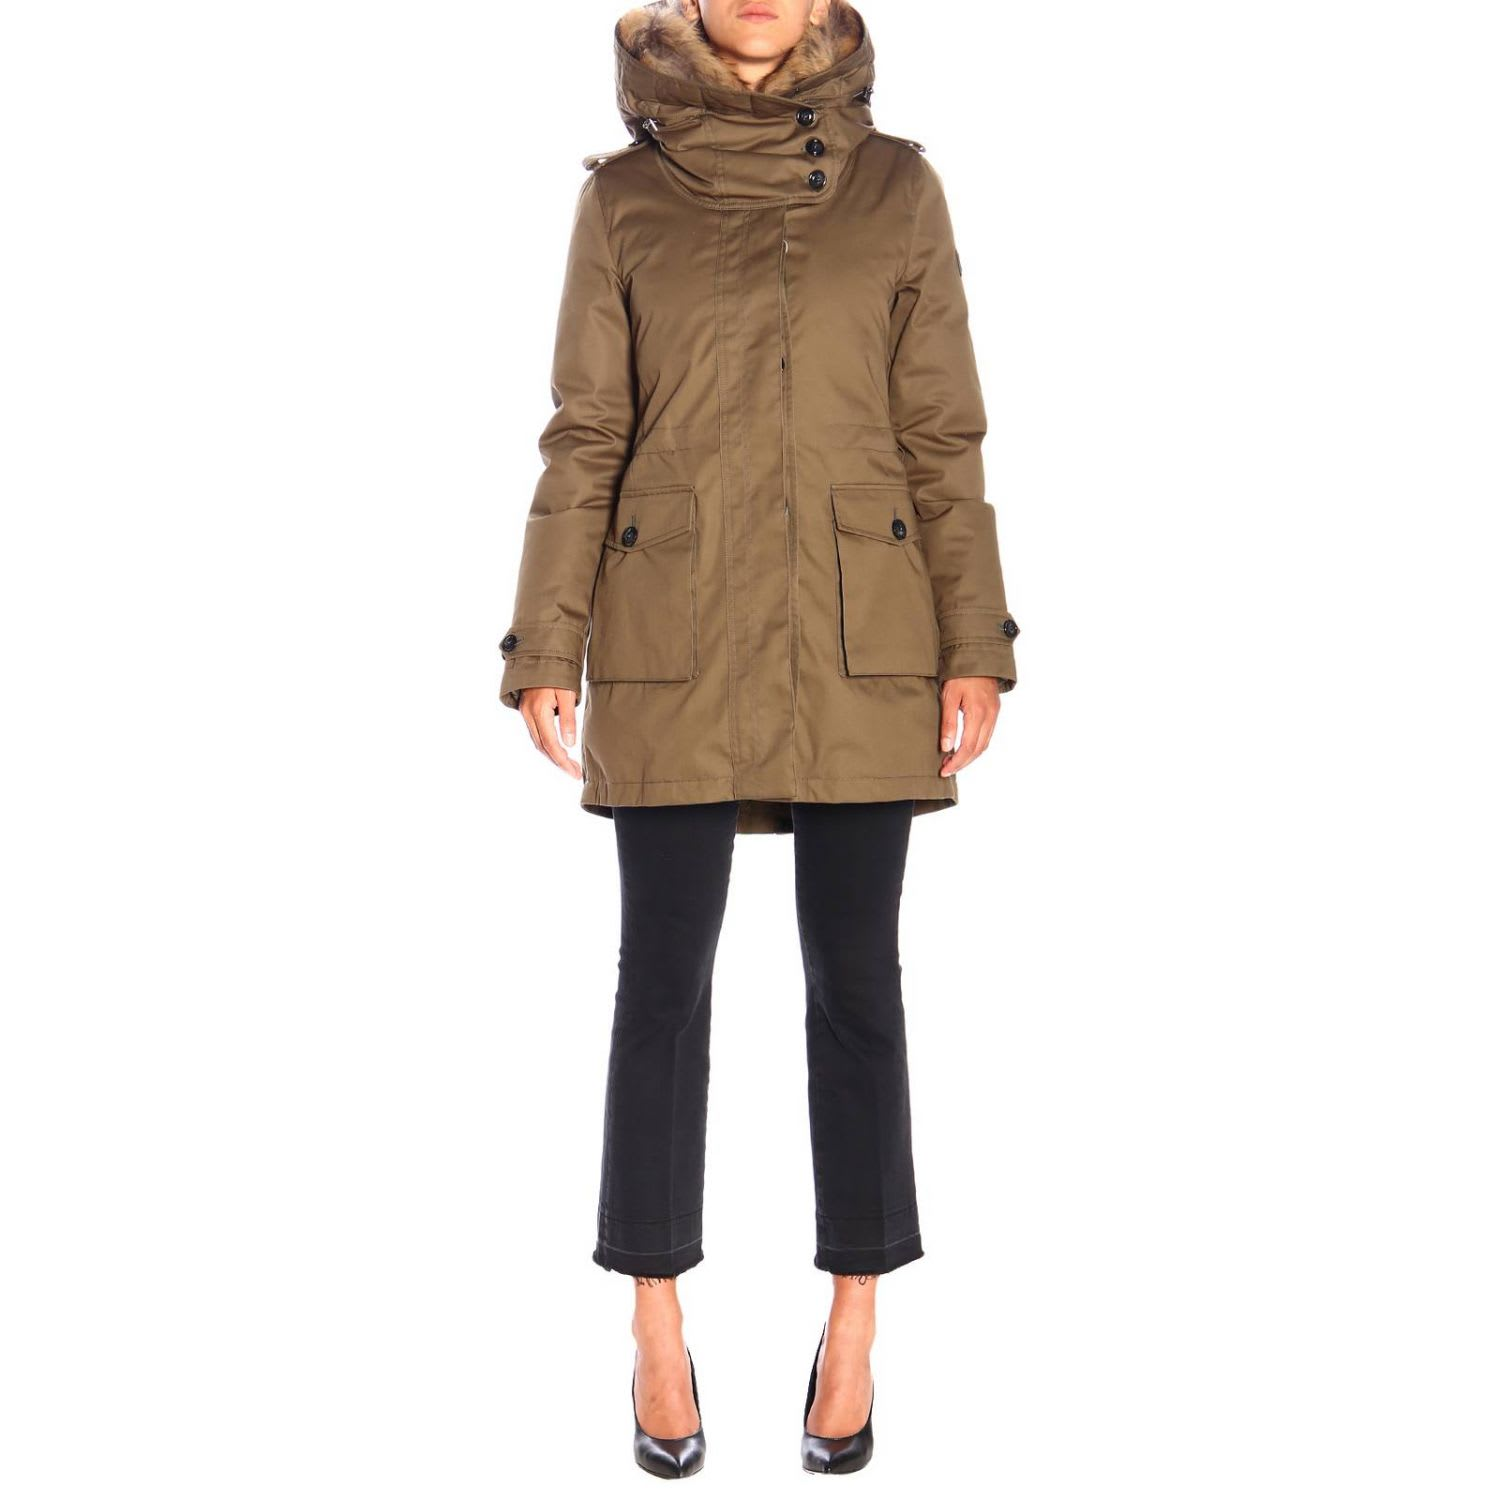 Photo of  Woolrich Jacket Jacket Women Woolrich- shop Woolrich jackets online sales